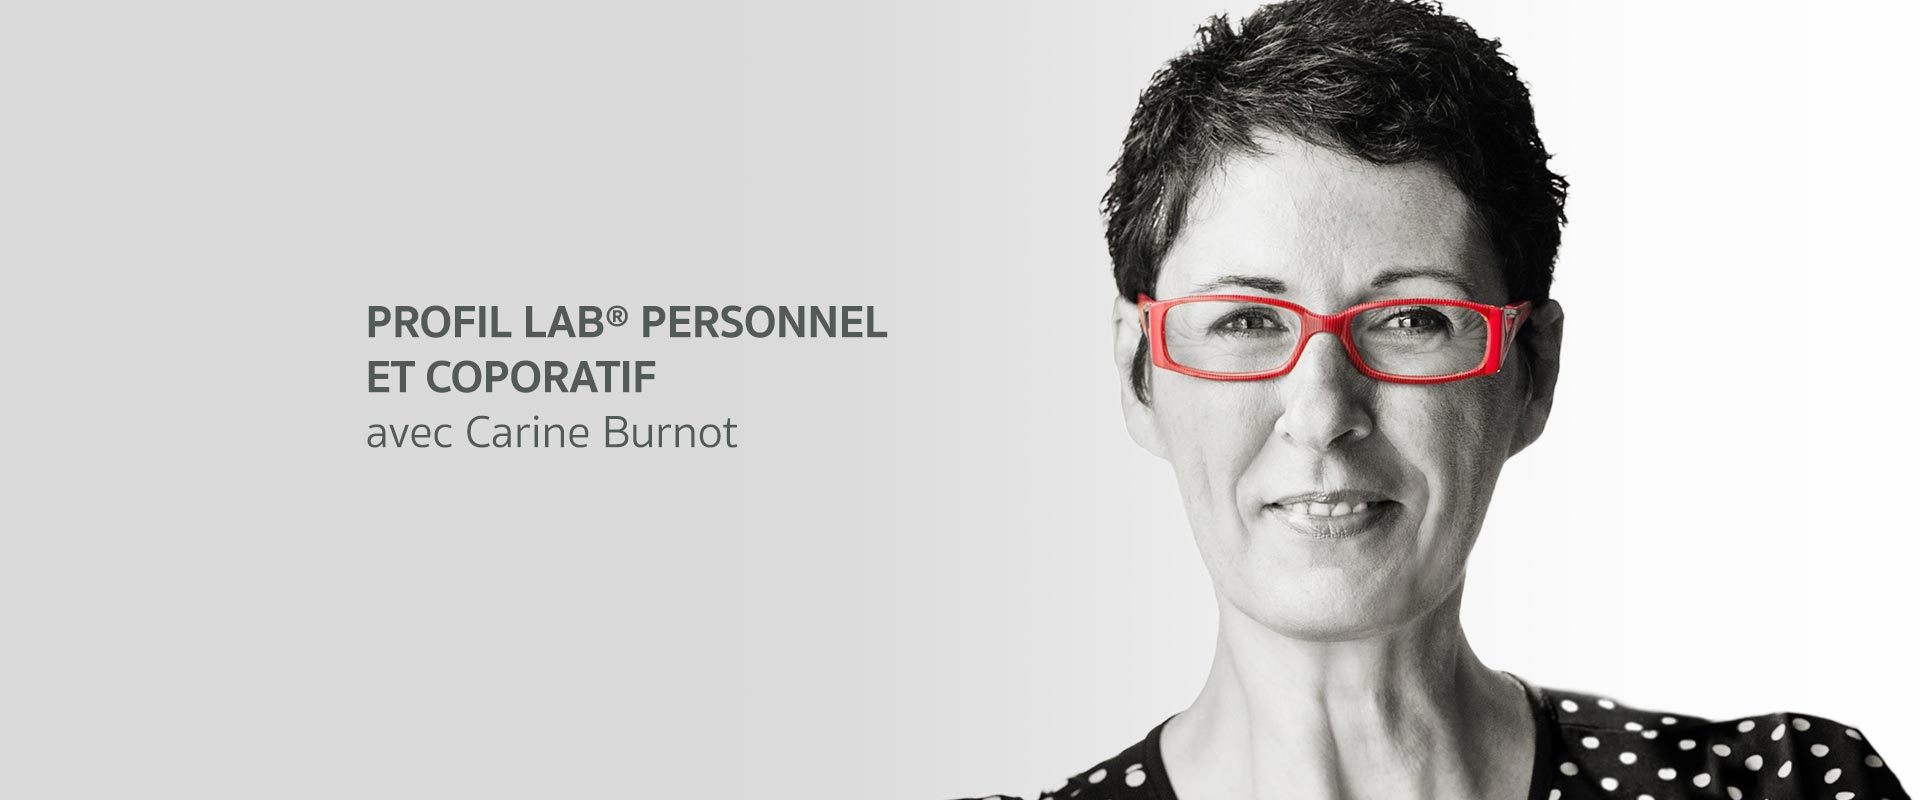 profil lab personnel et corporatif carine burnot